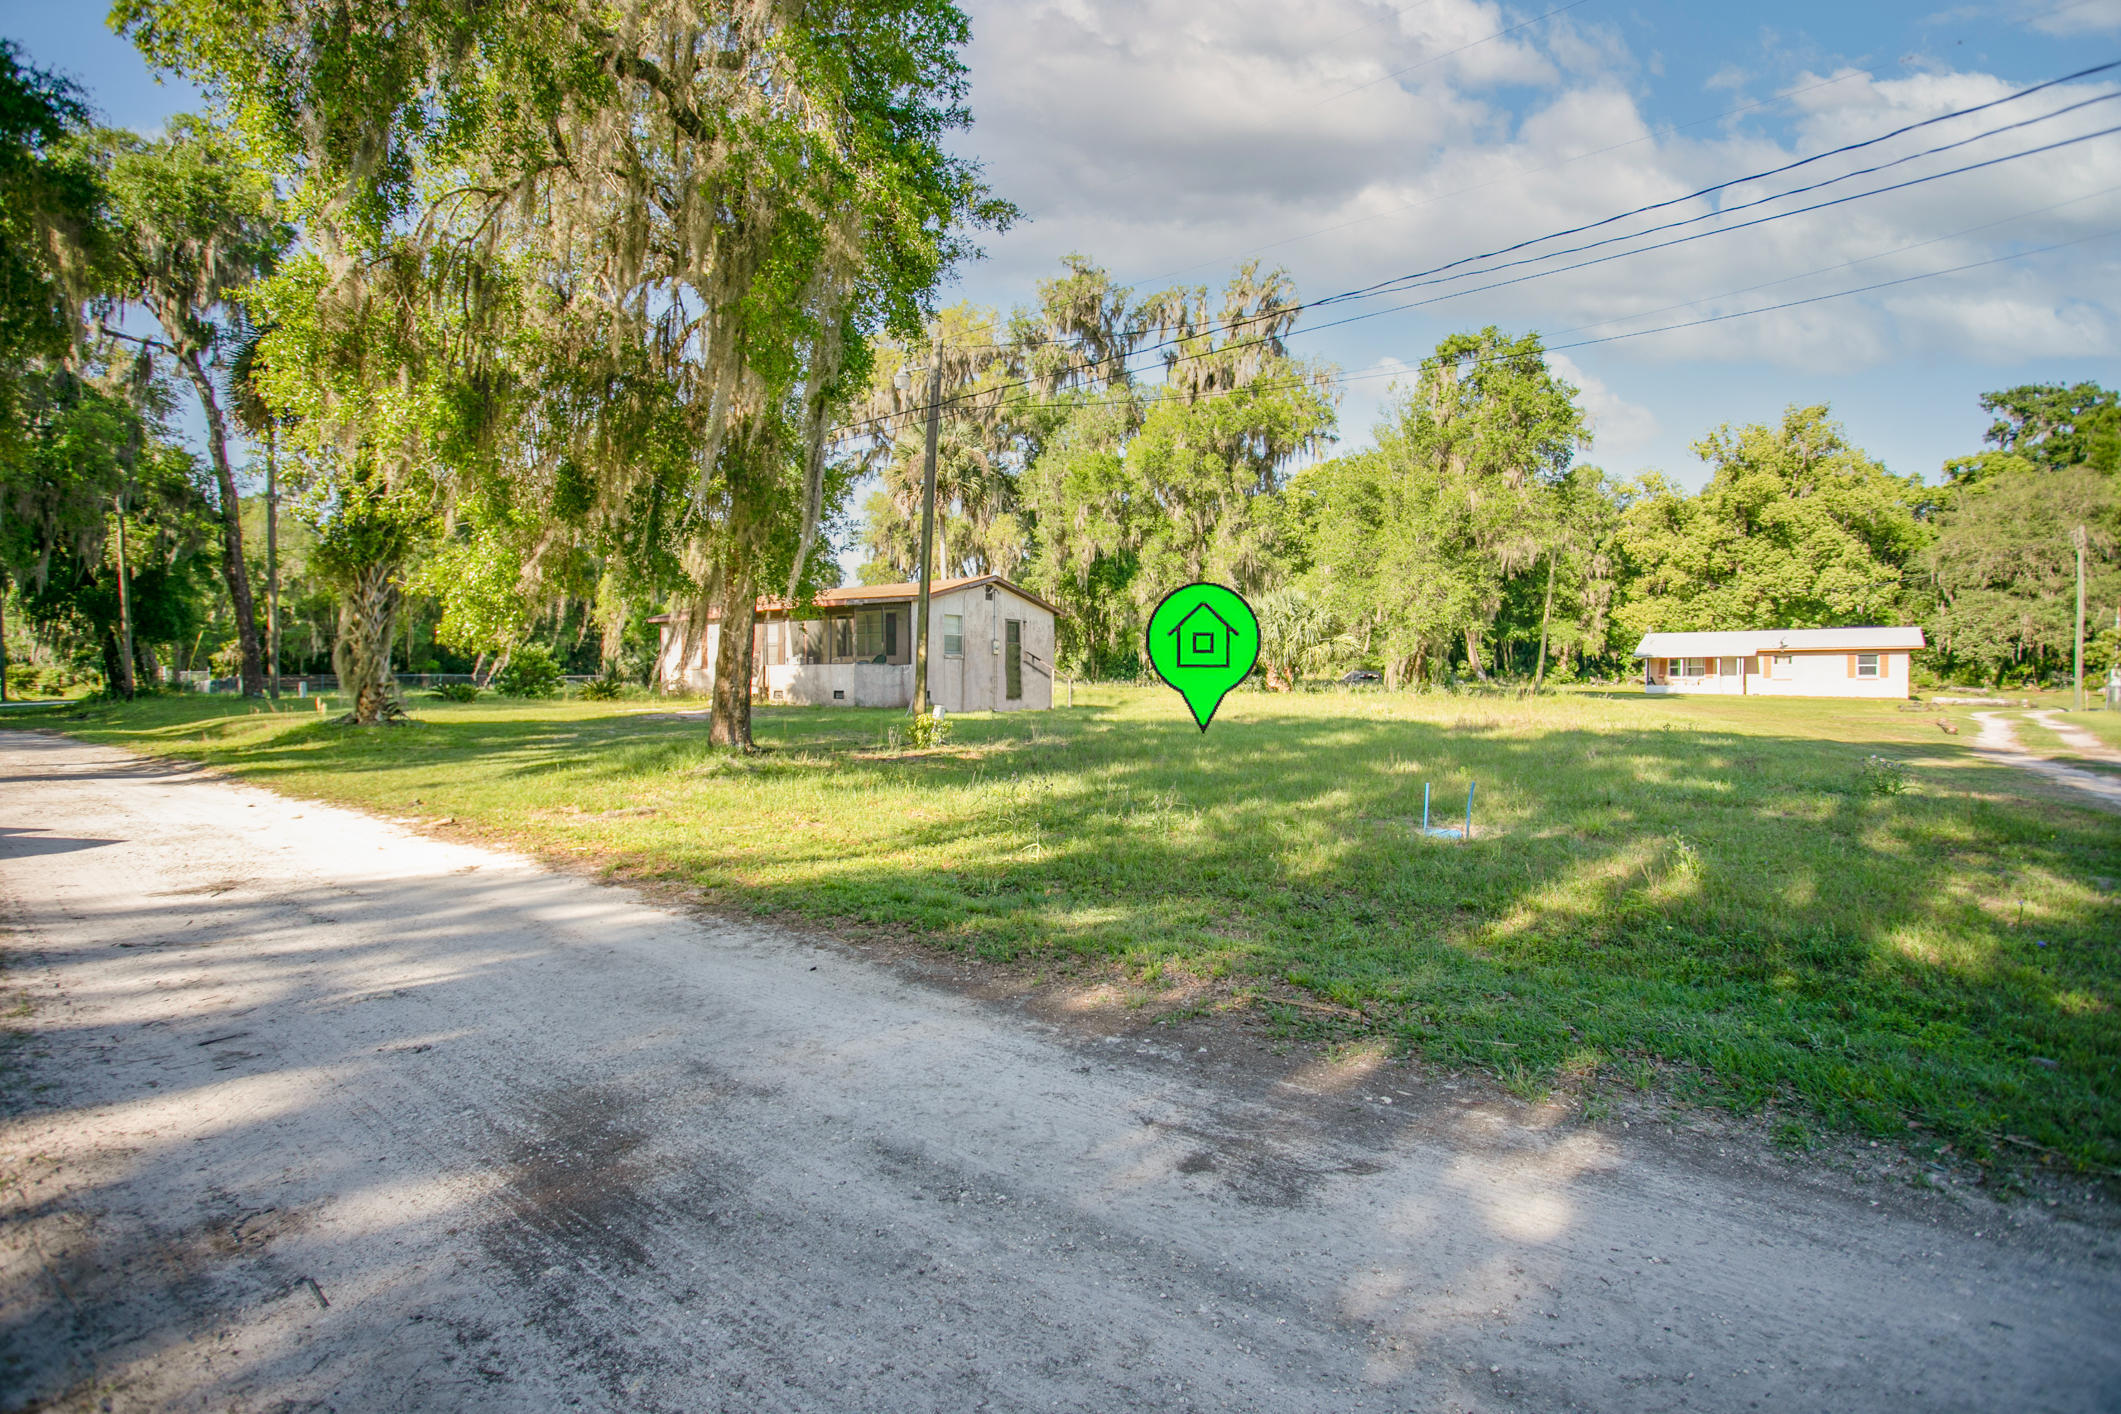 Located on the western side of the town of Welaka, FL. This lot is offers the opportunity to build your next vacation home or permanent get away. Just a minutes from the Boat ramp which offers Excellent Fishing/boating activities on the St. Johns River and a quite community setting.